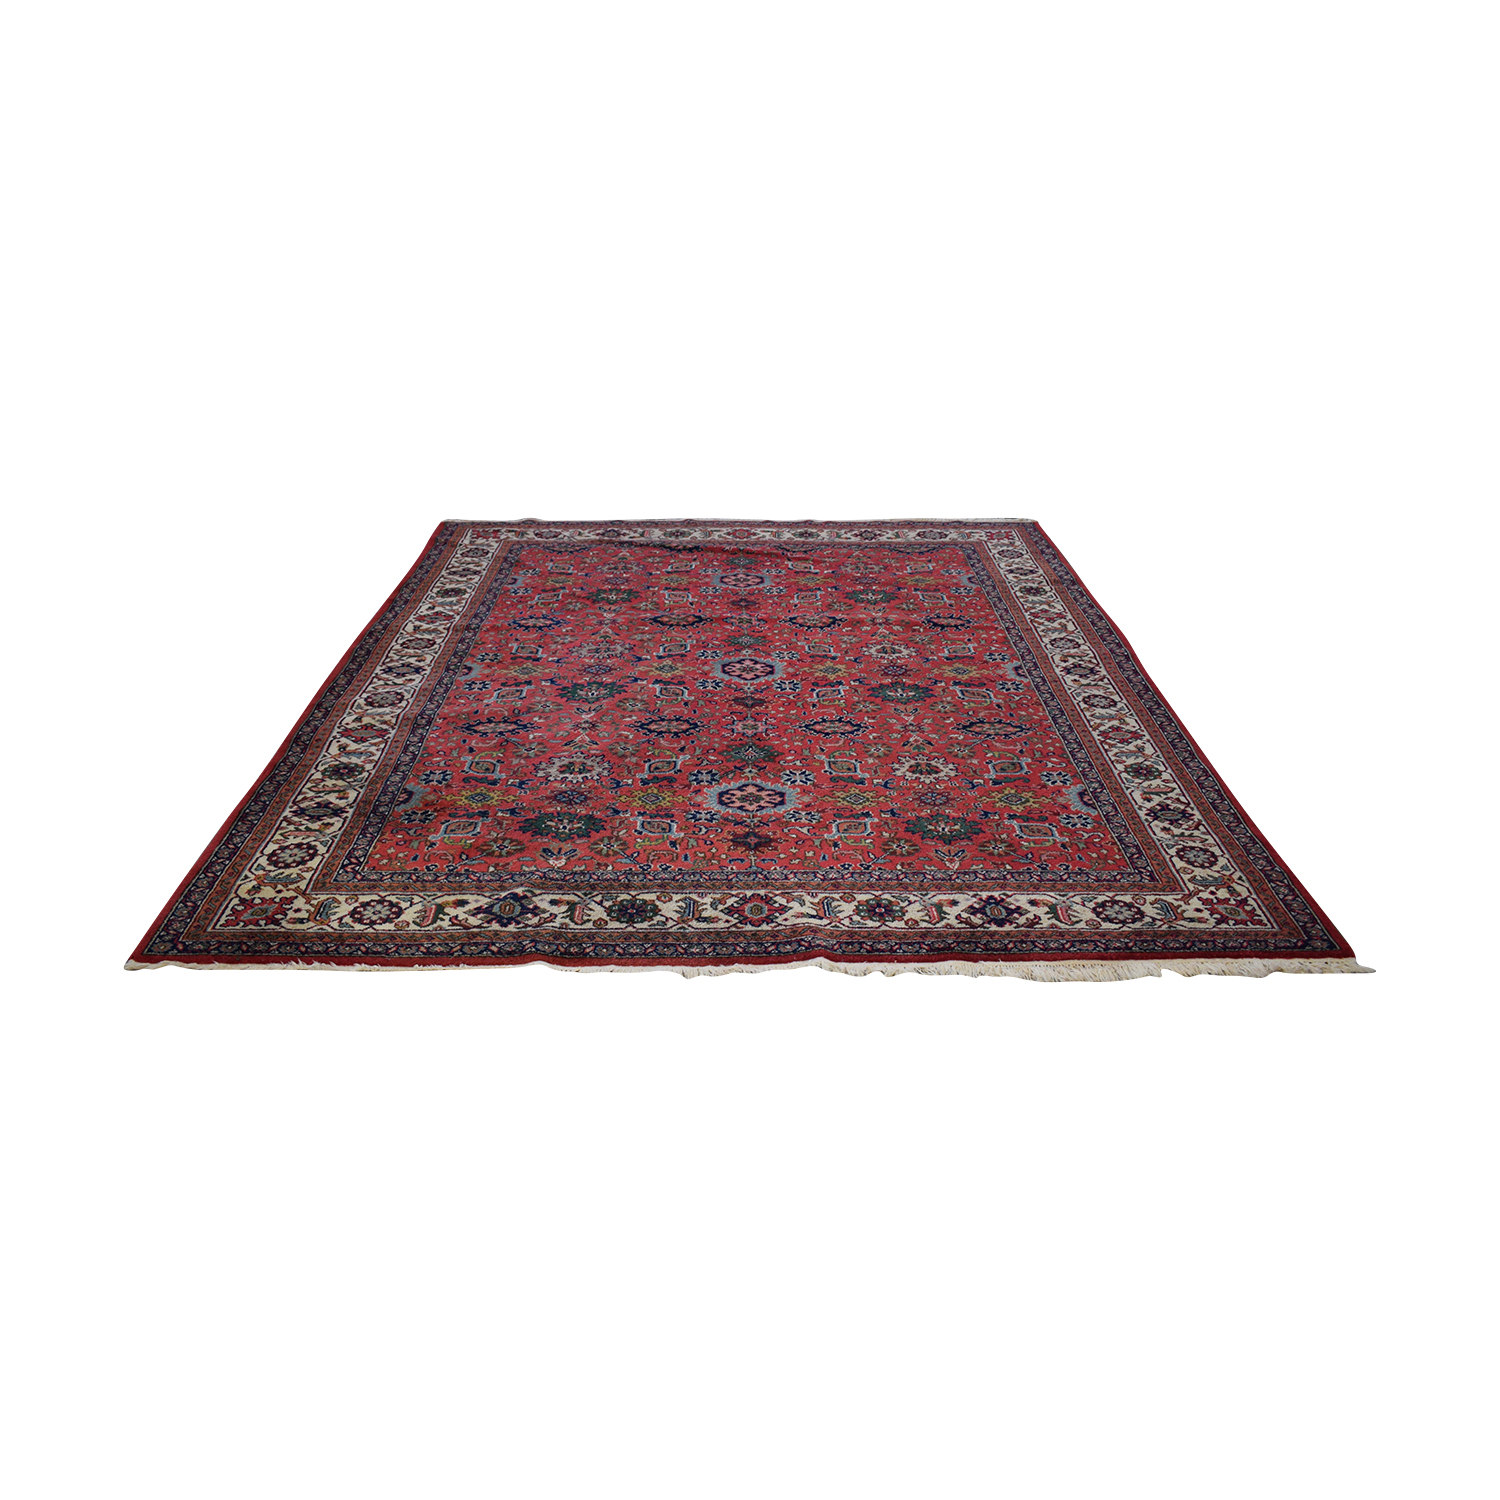 Oriental Multi-Colored Red Rug for sale